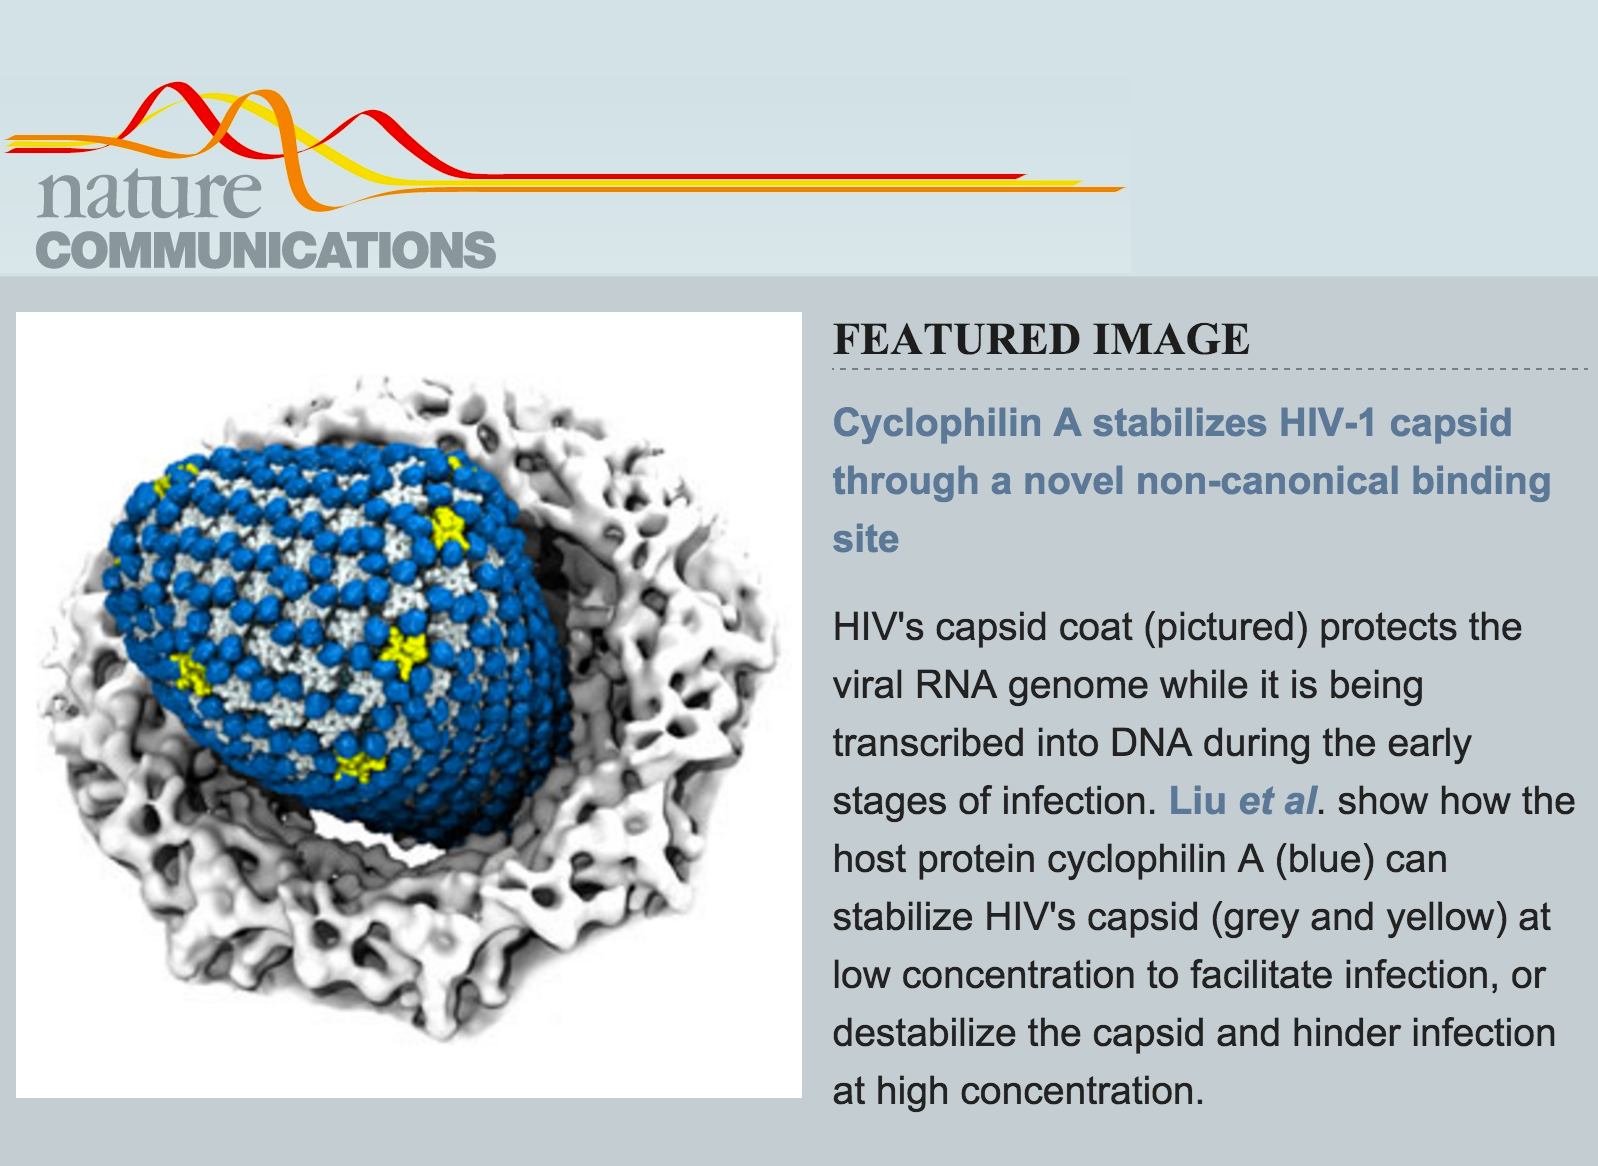 Cyclophilin A stabilizes the HIV-1 capsid through a novel non-canonical binding site.